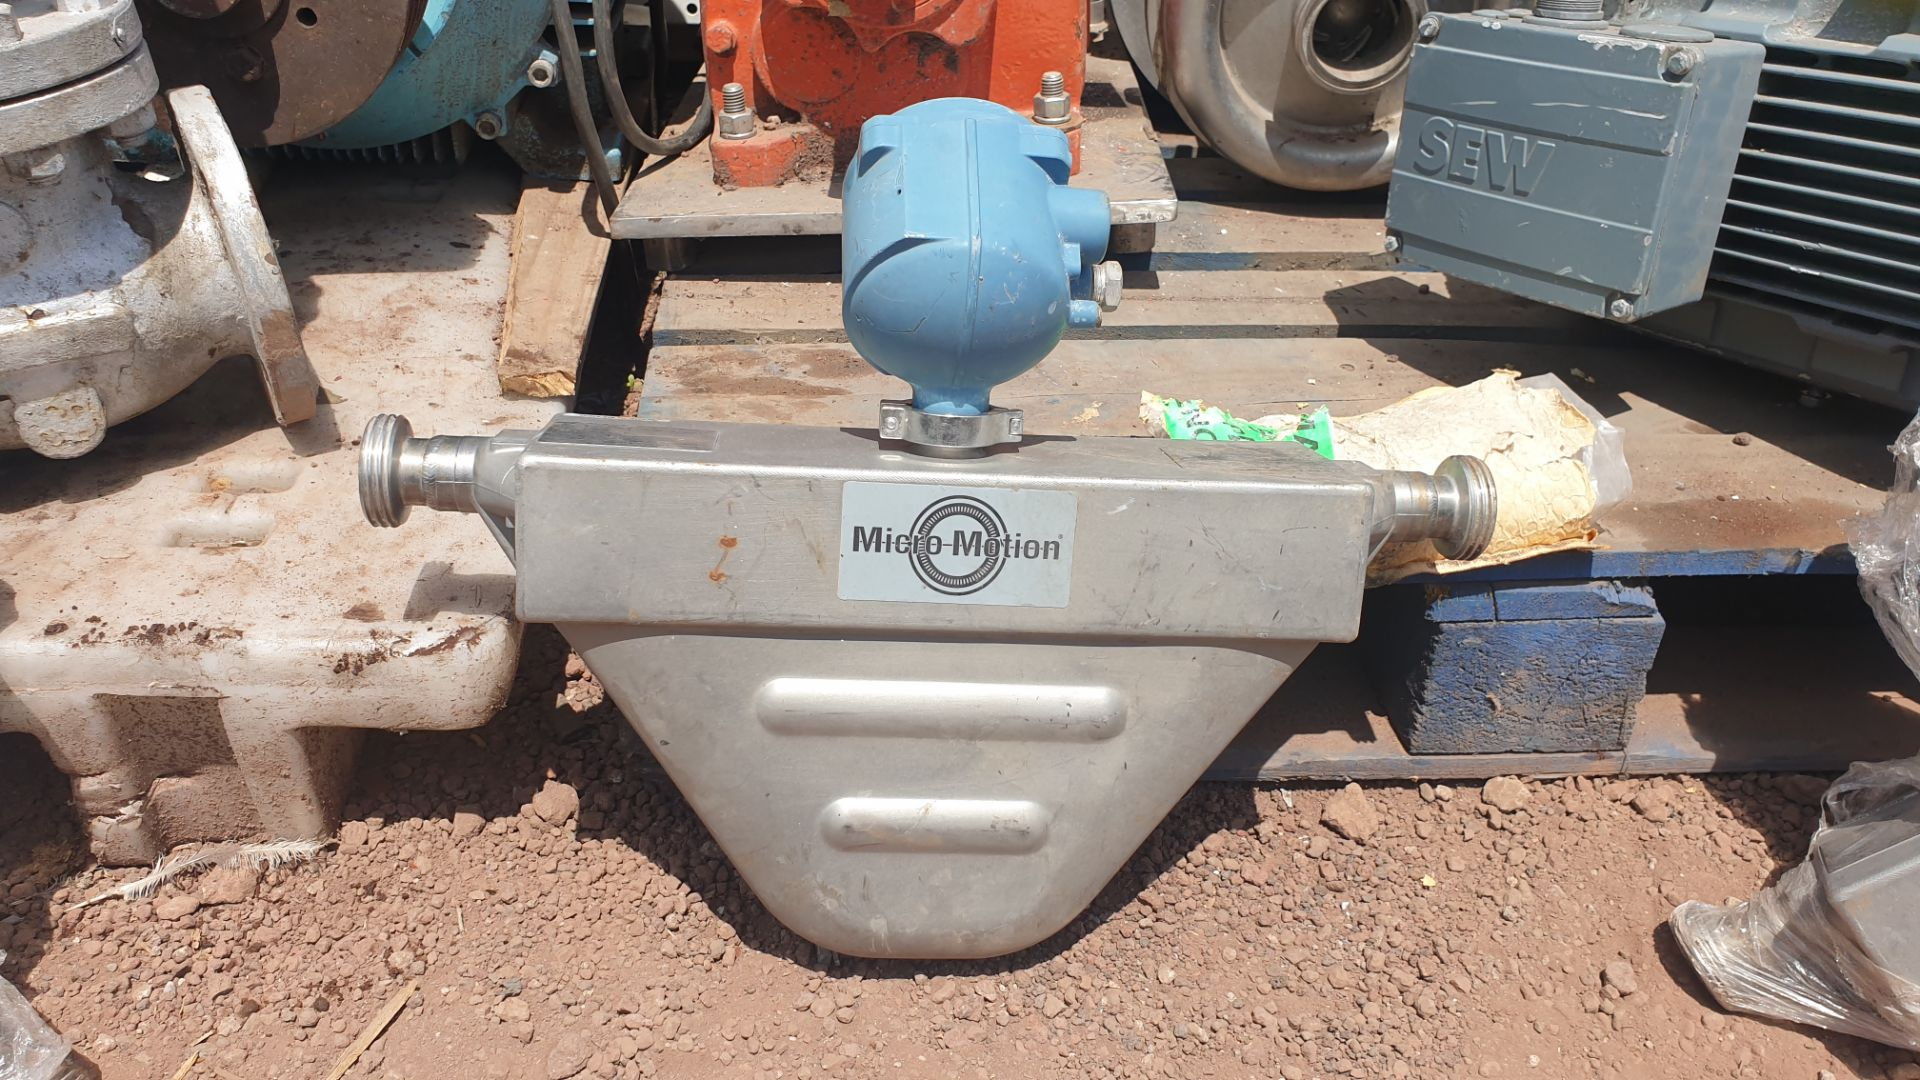 Micromotion Flow meter, model F100S230C2BMSZZZZ NS 14638390 2016 - Image 7 of 9